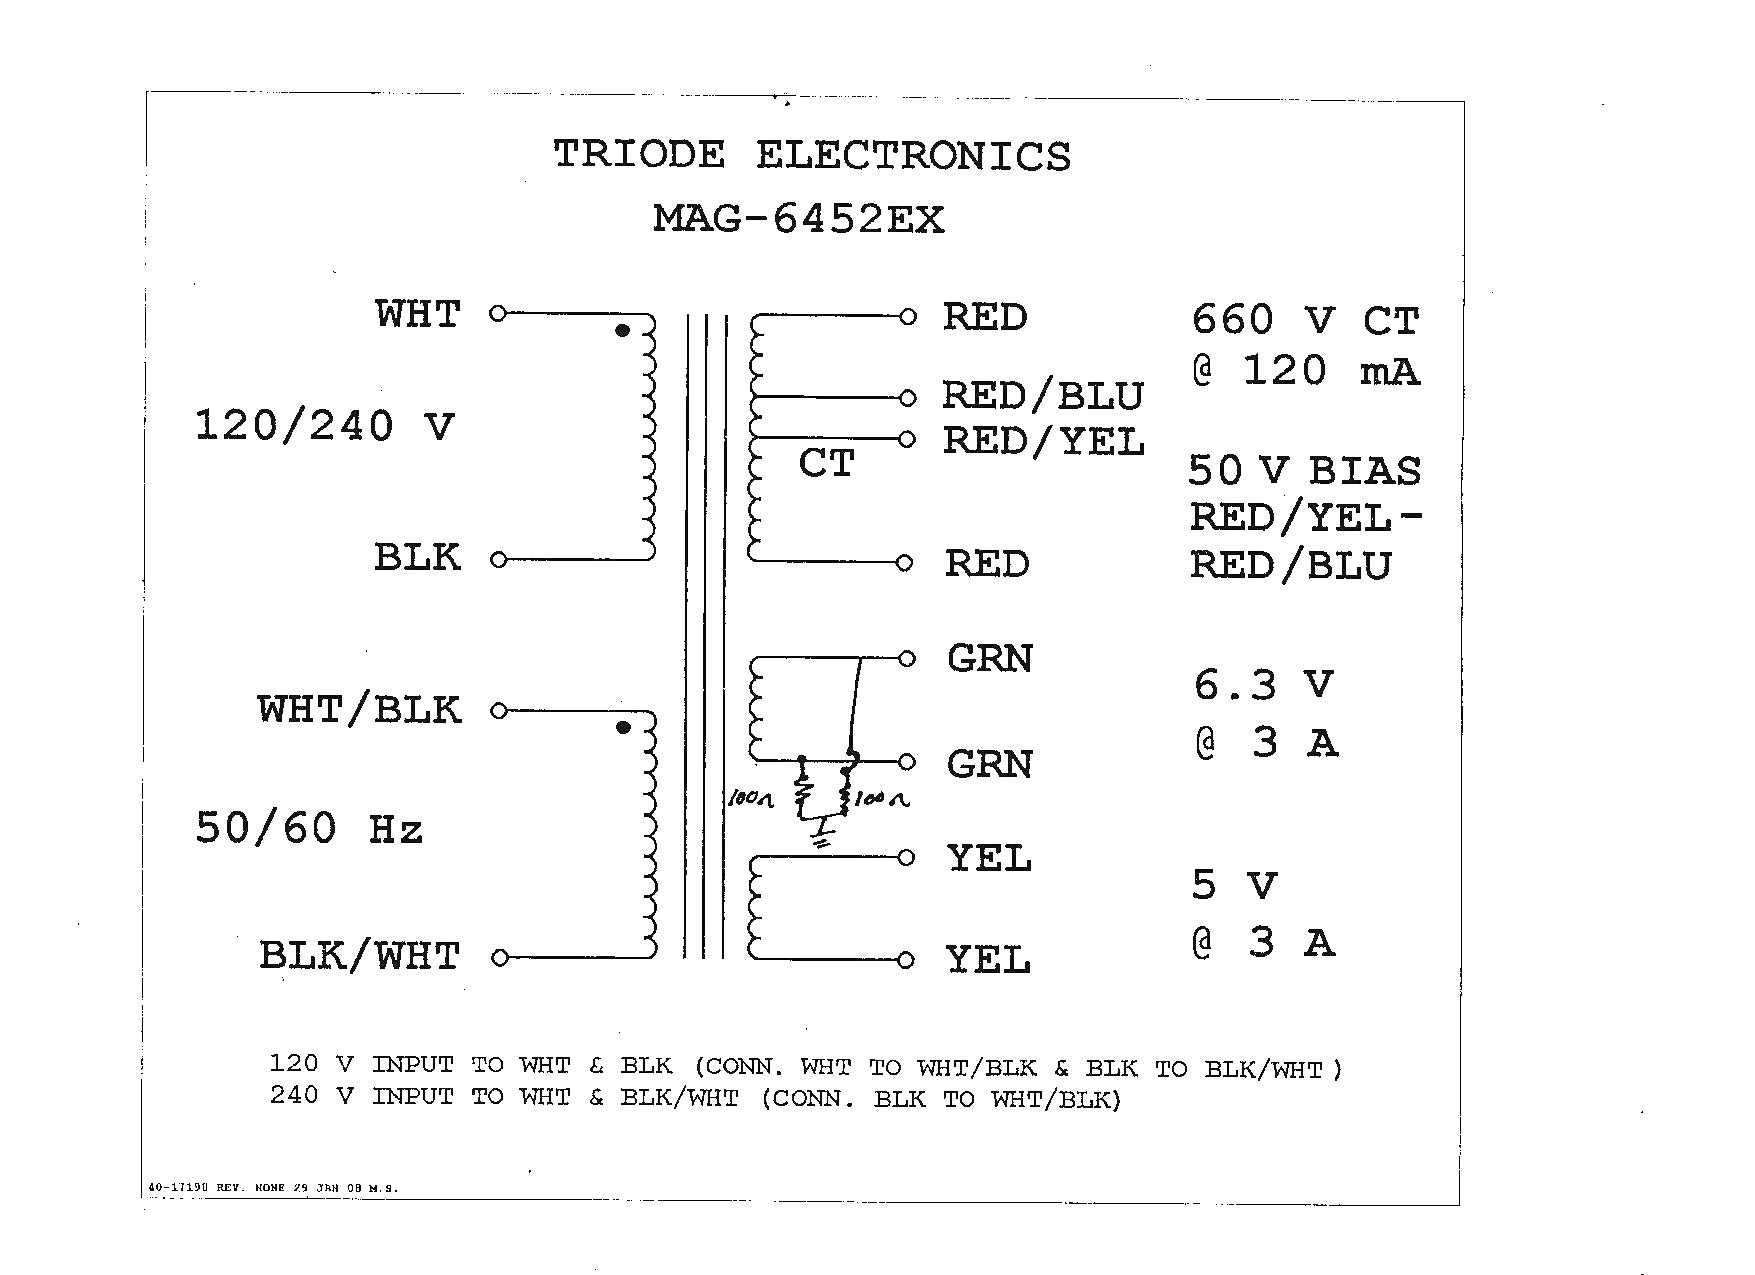 federal pacific buck boost transformer wiring diagram Collection-3 Phase Buck Boost Transformer Wiring Diagram Popular Acme Transformers Wiring Diagrams Acme Transformer Wiring Diagrams 2-j